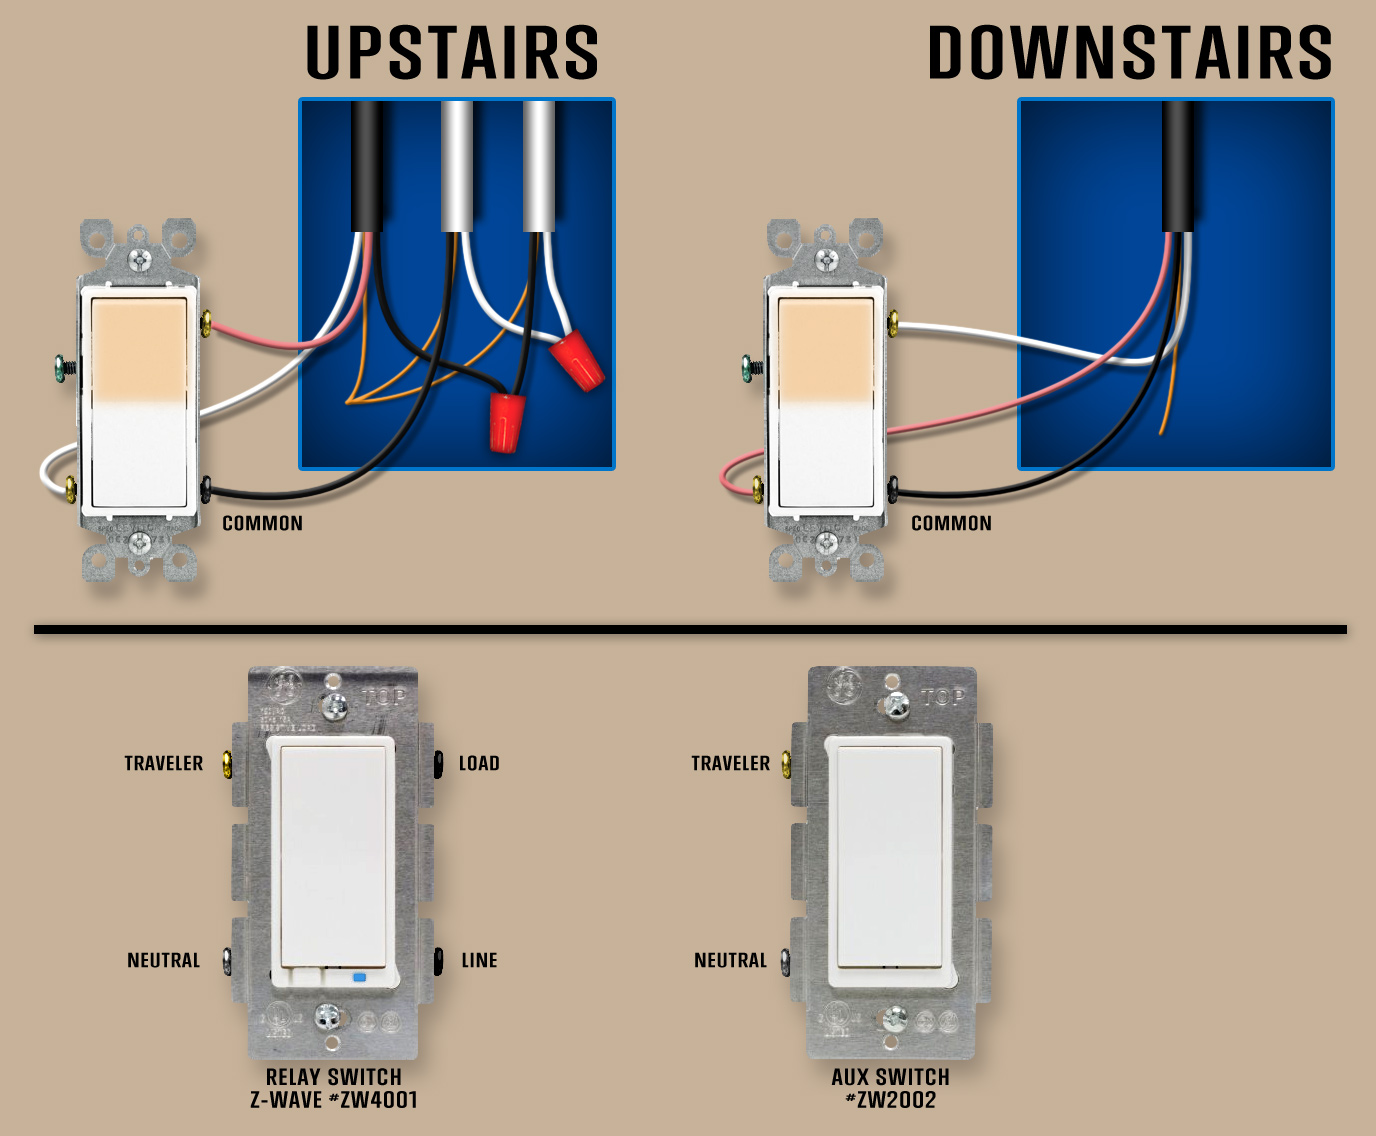 wiring diagram for 4 way switch help with ge jasco light switches connected 2005 cobalt radio electrical 3 home improvement stack